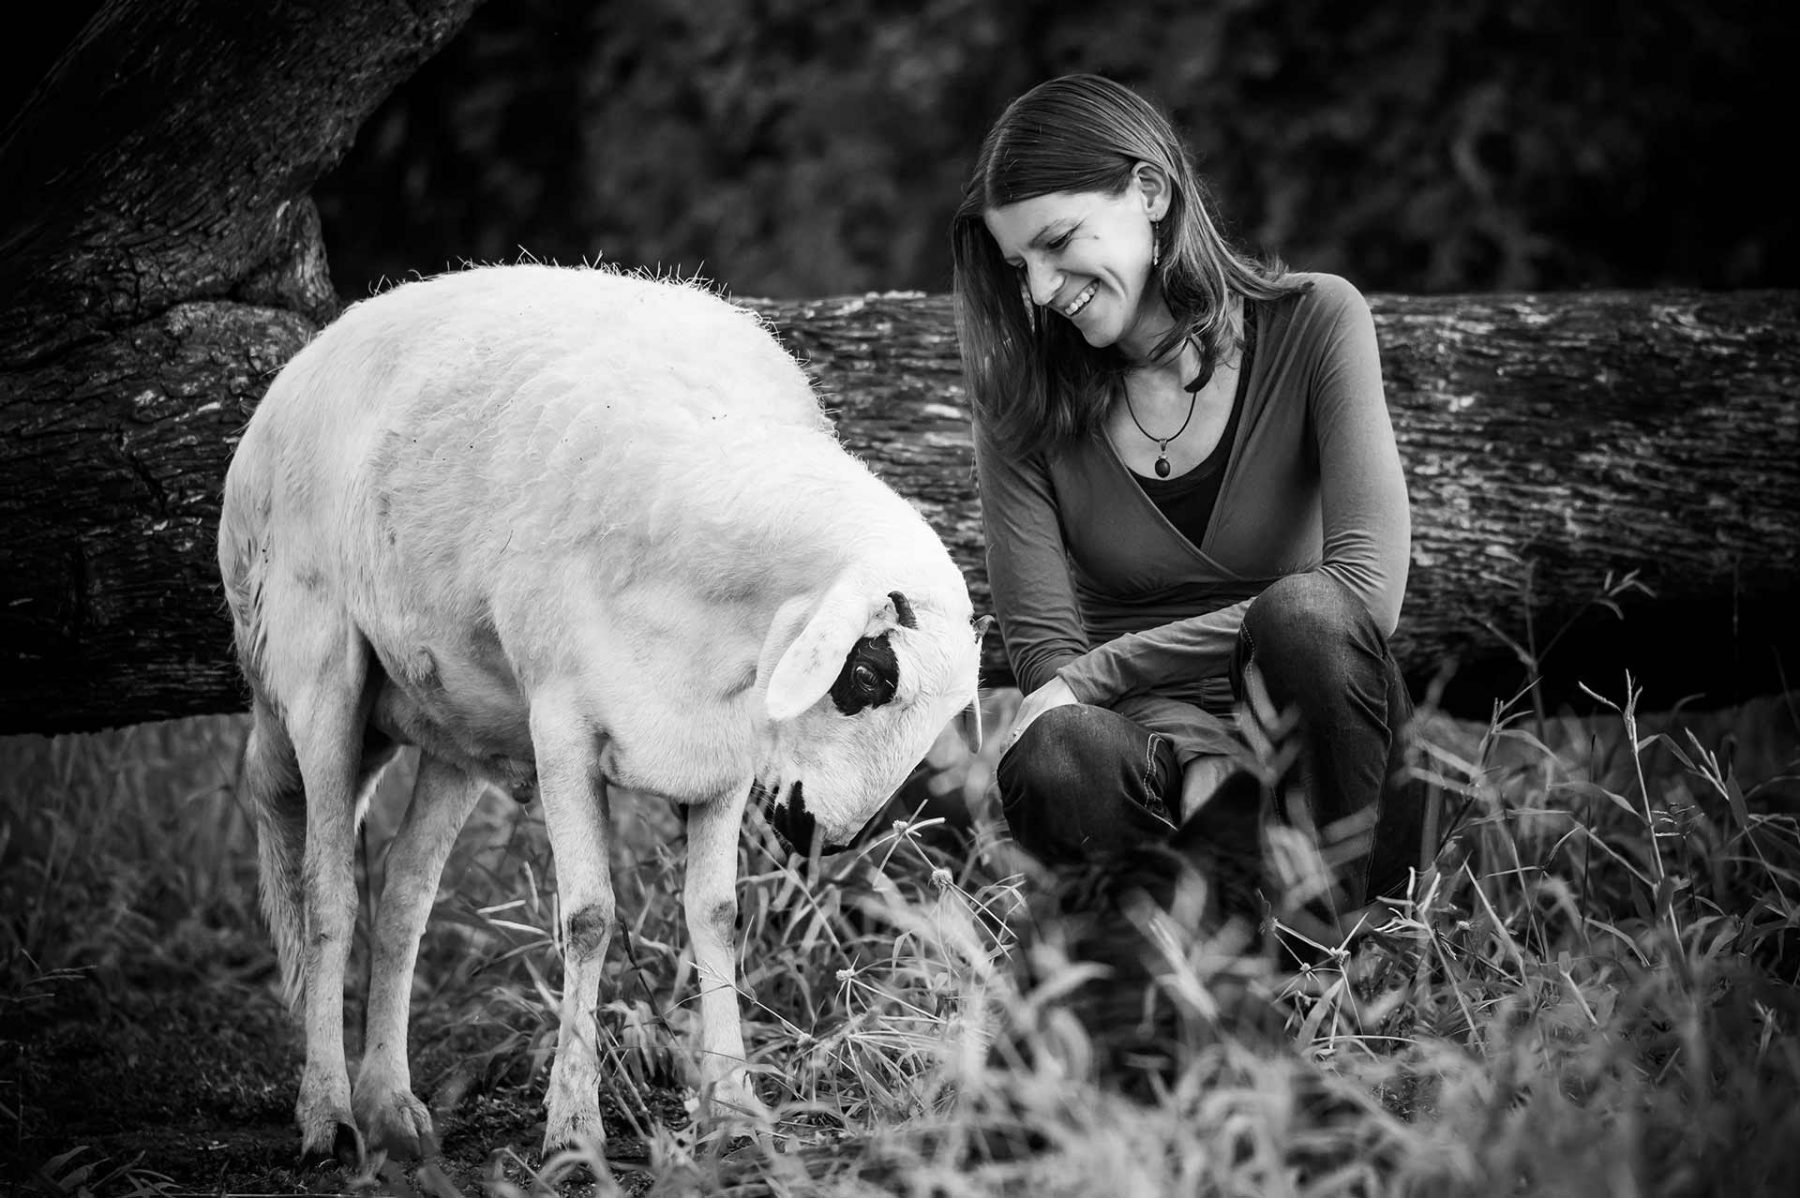 Co-Director and Rehabilitator Josie du Toit at the Vervet Monkey Foundation, posing with Basil the sheep. South Africa, 2016